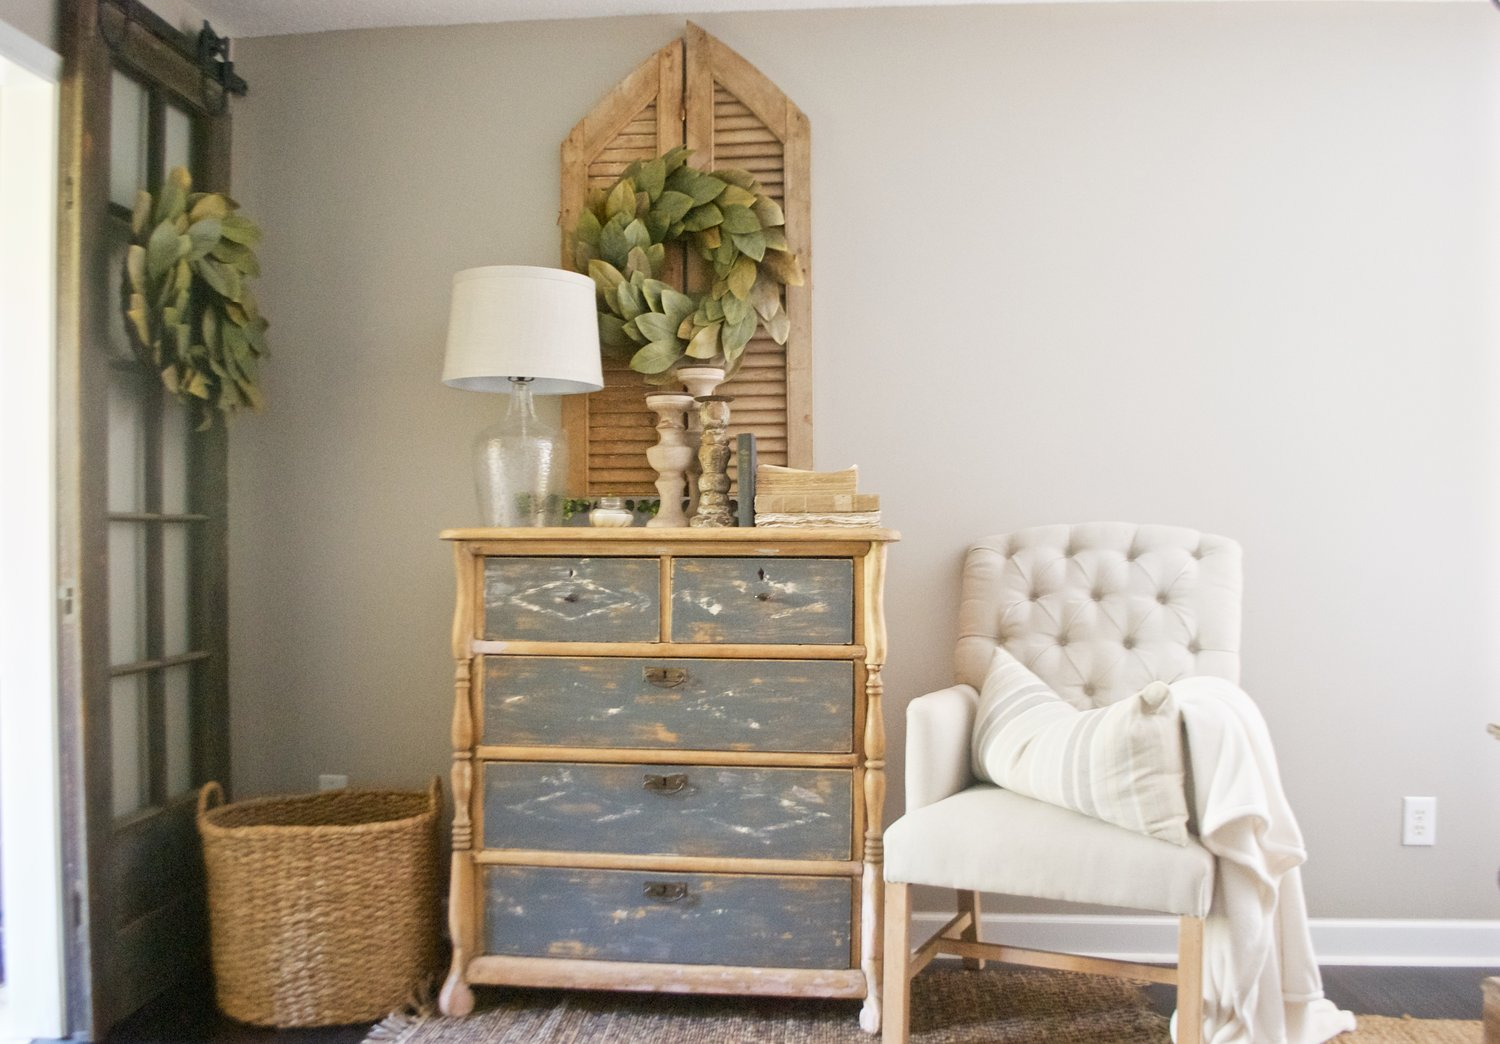 Farmhouse dresser and magnolia wreath